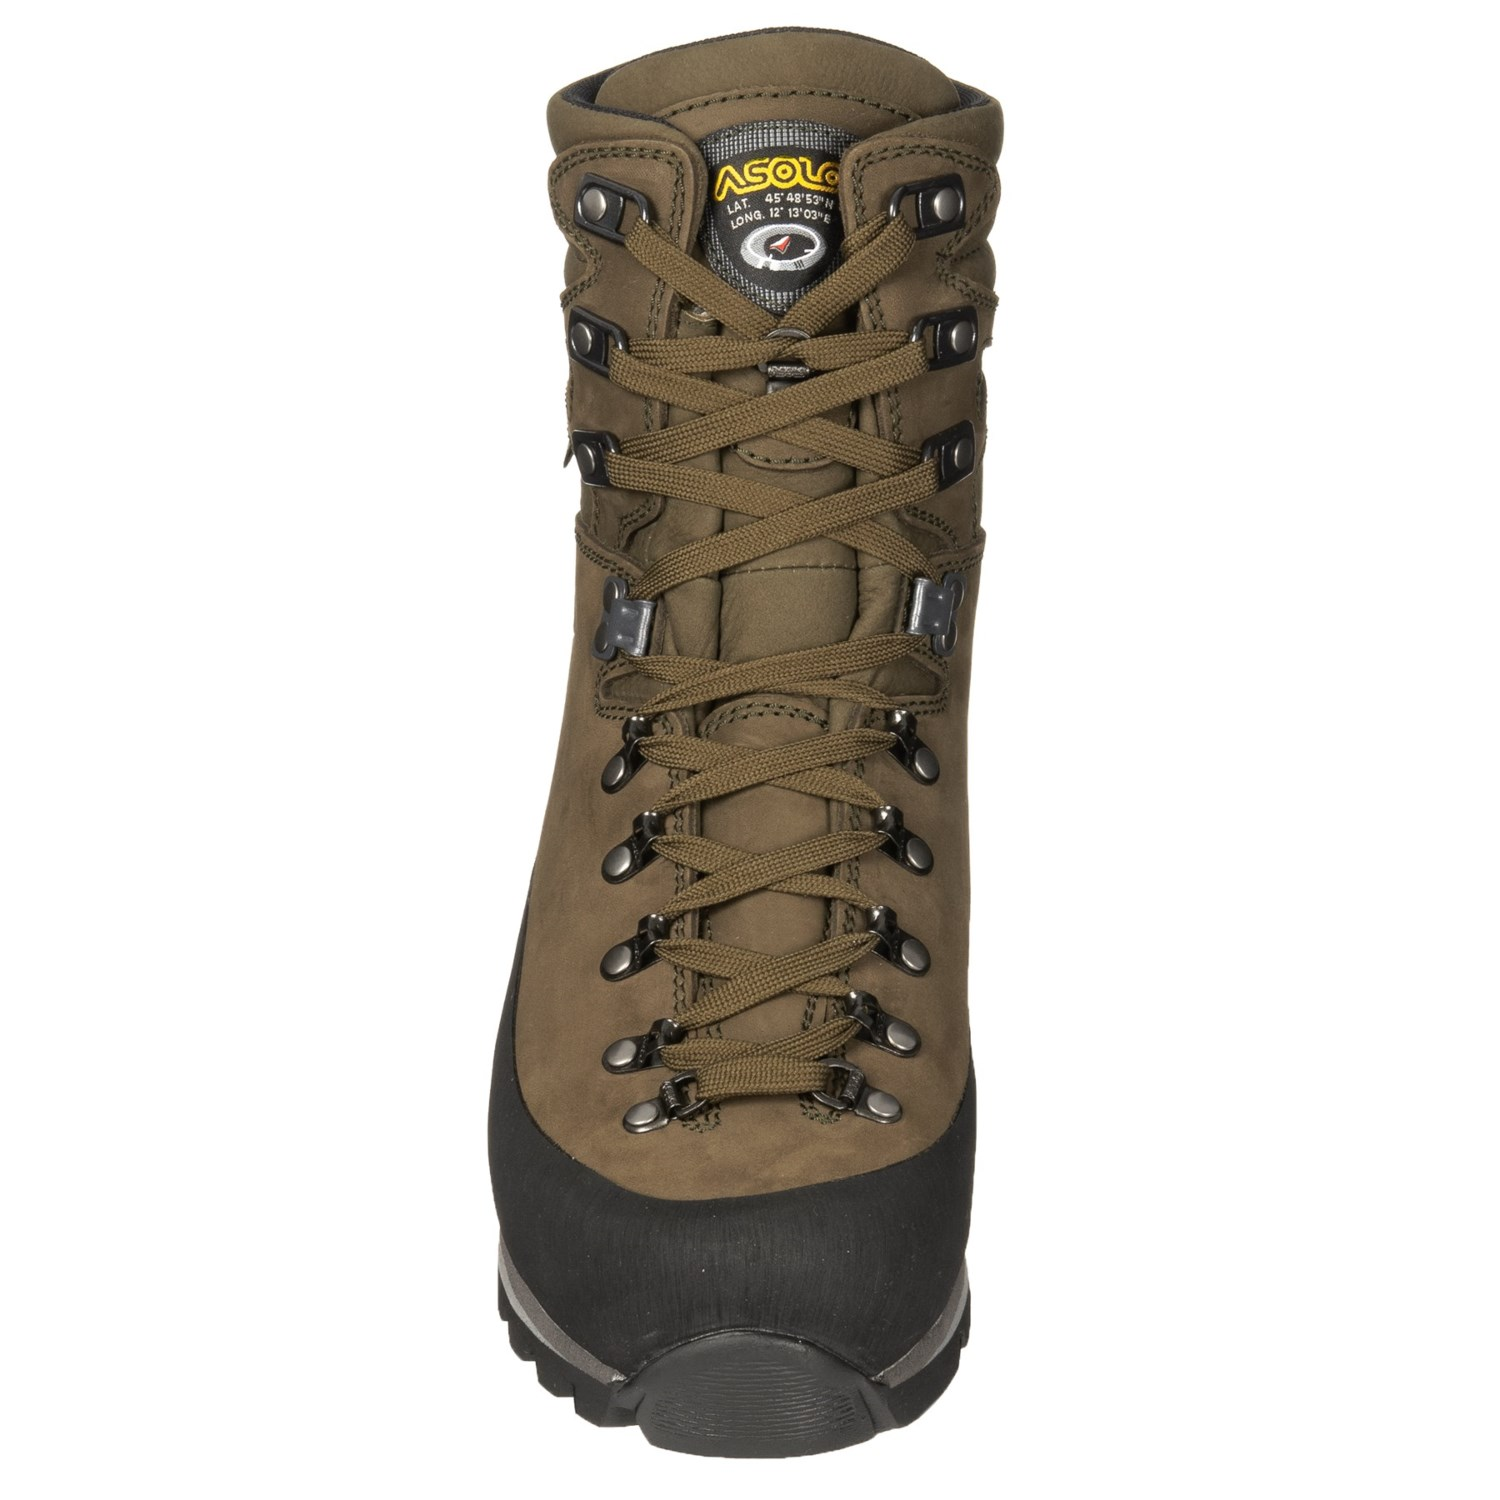 debe9db840ad Asolo Hunter Extreme GV Gore-Tex® Hunting Boots (For Men) - Save 40%